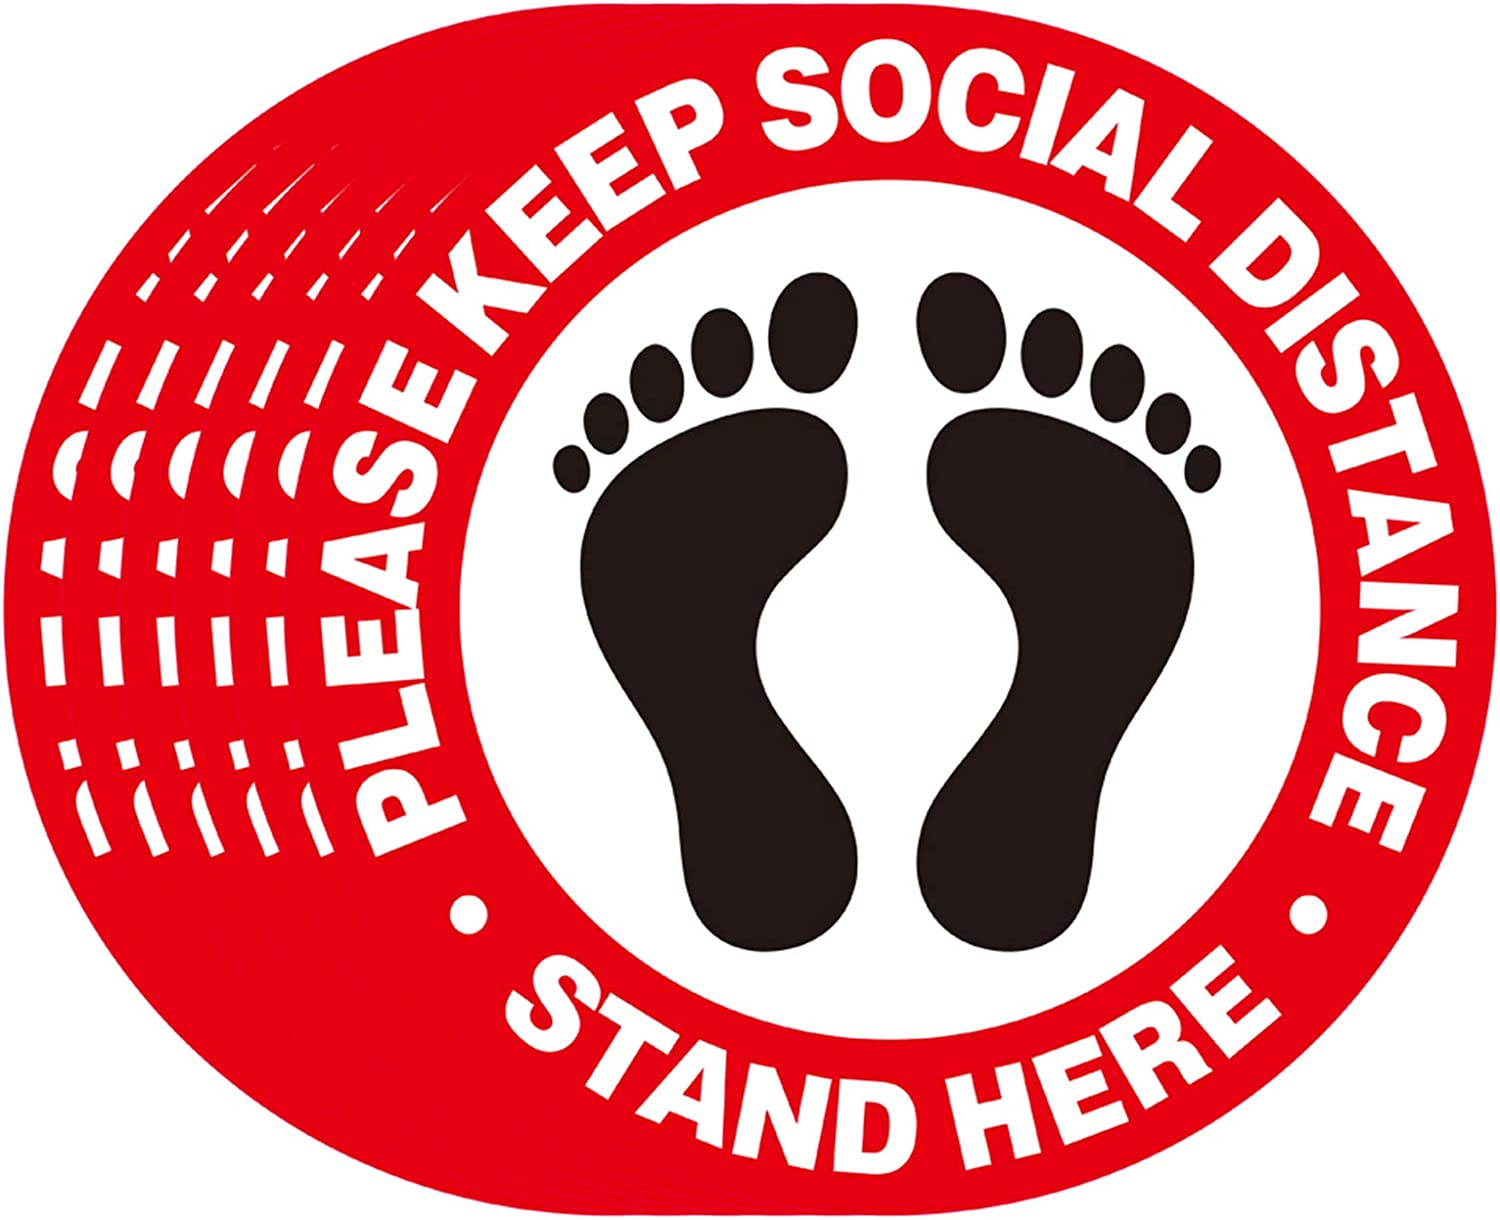 Social Distancing Floor Decals- 12 Pack Stand Decals - Stand Here Sign 8 inch Safety Distance Sticker Markers